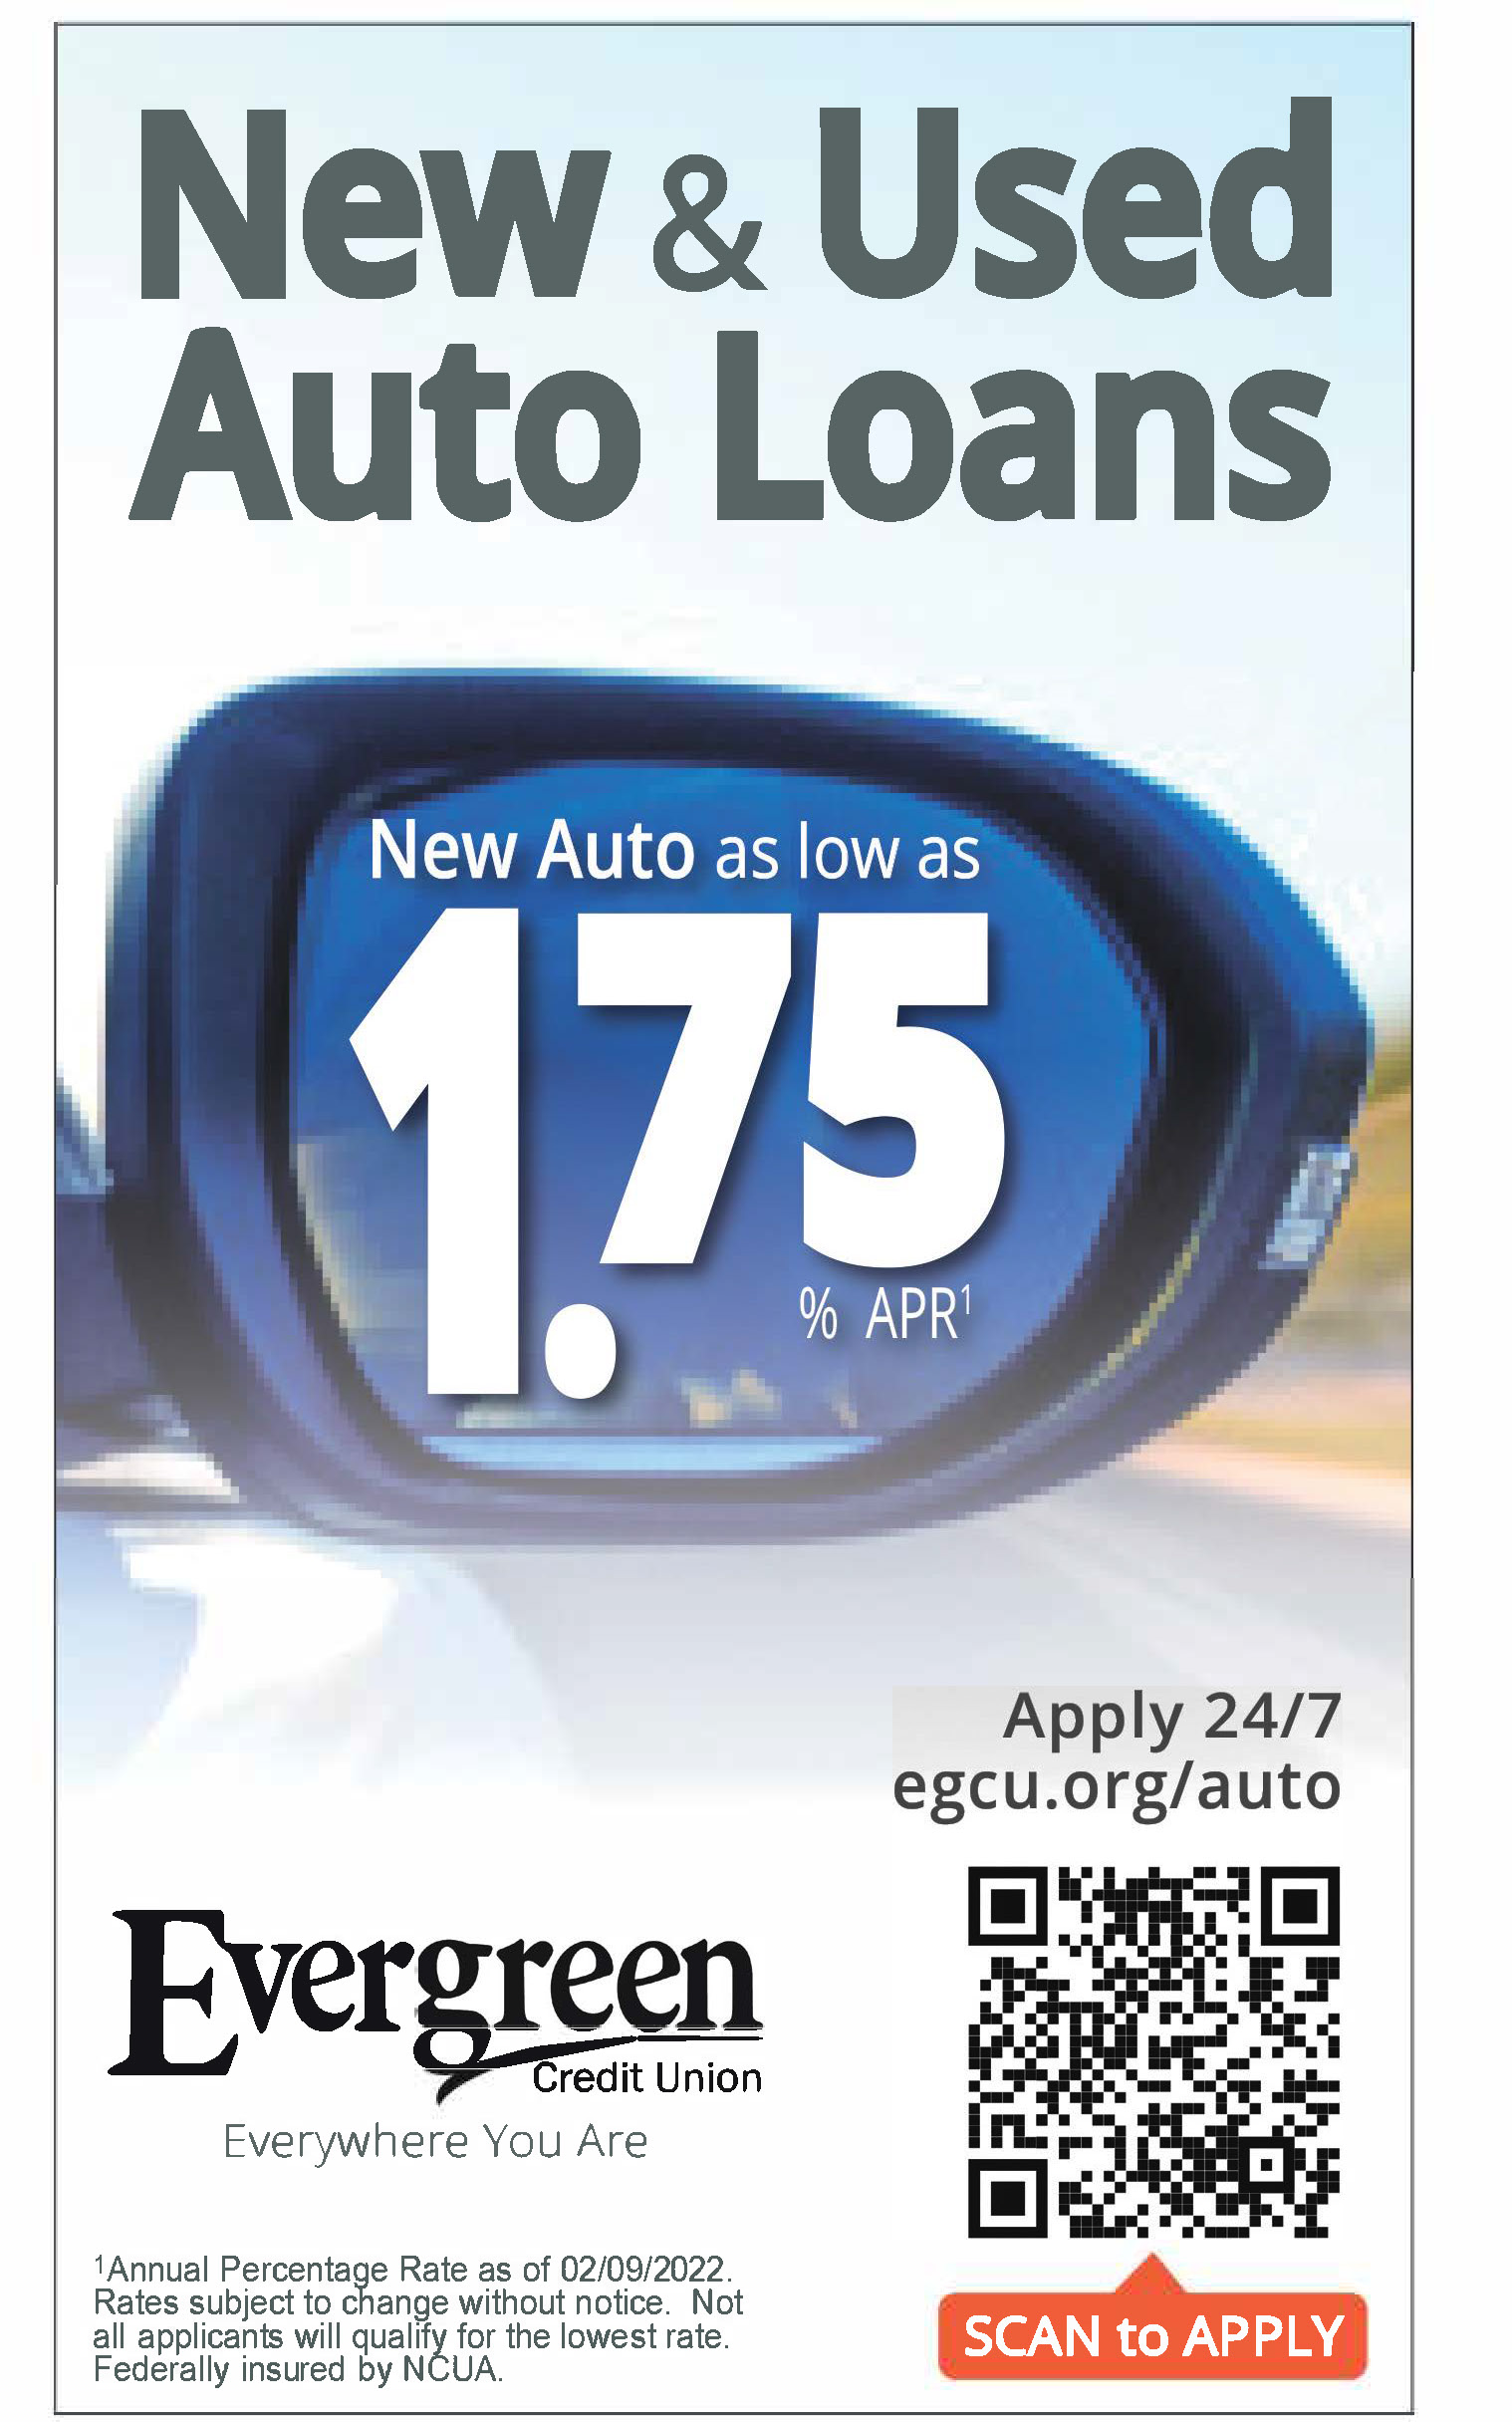 #EvergreenCreditUnion